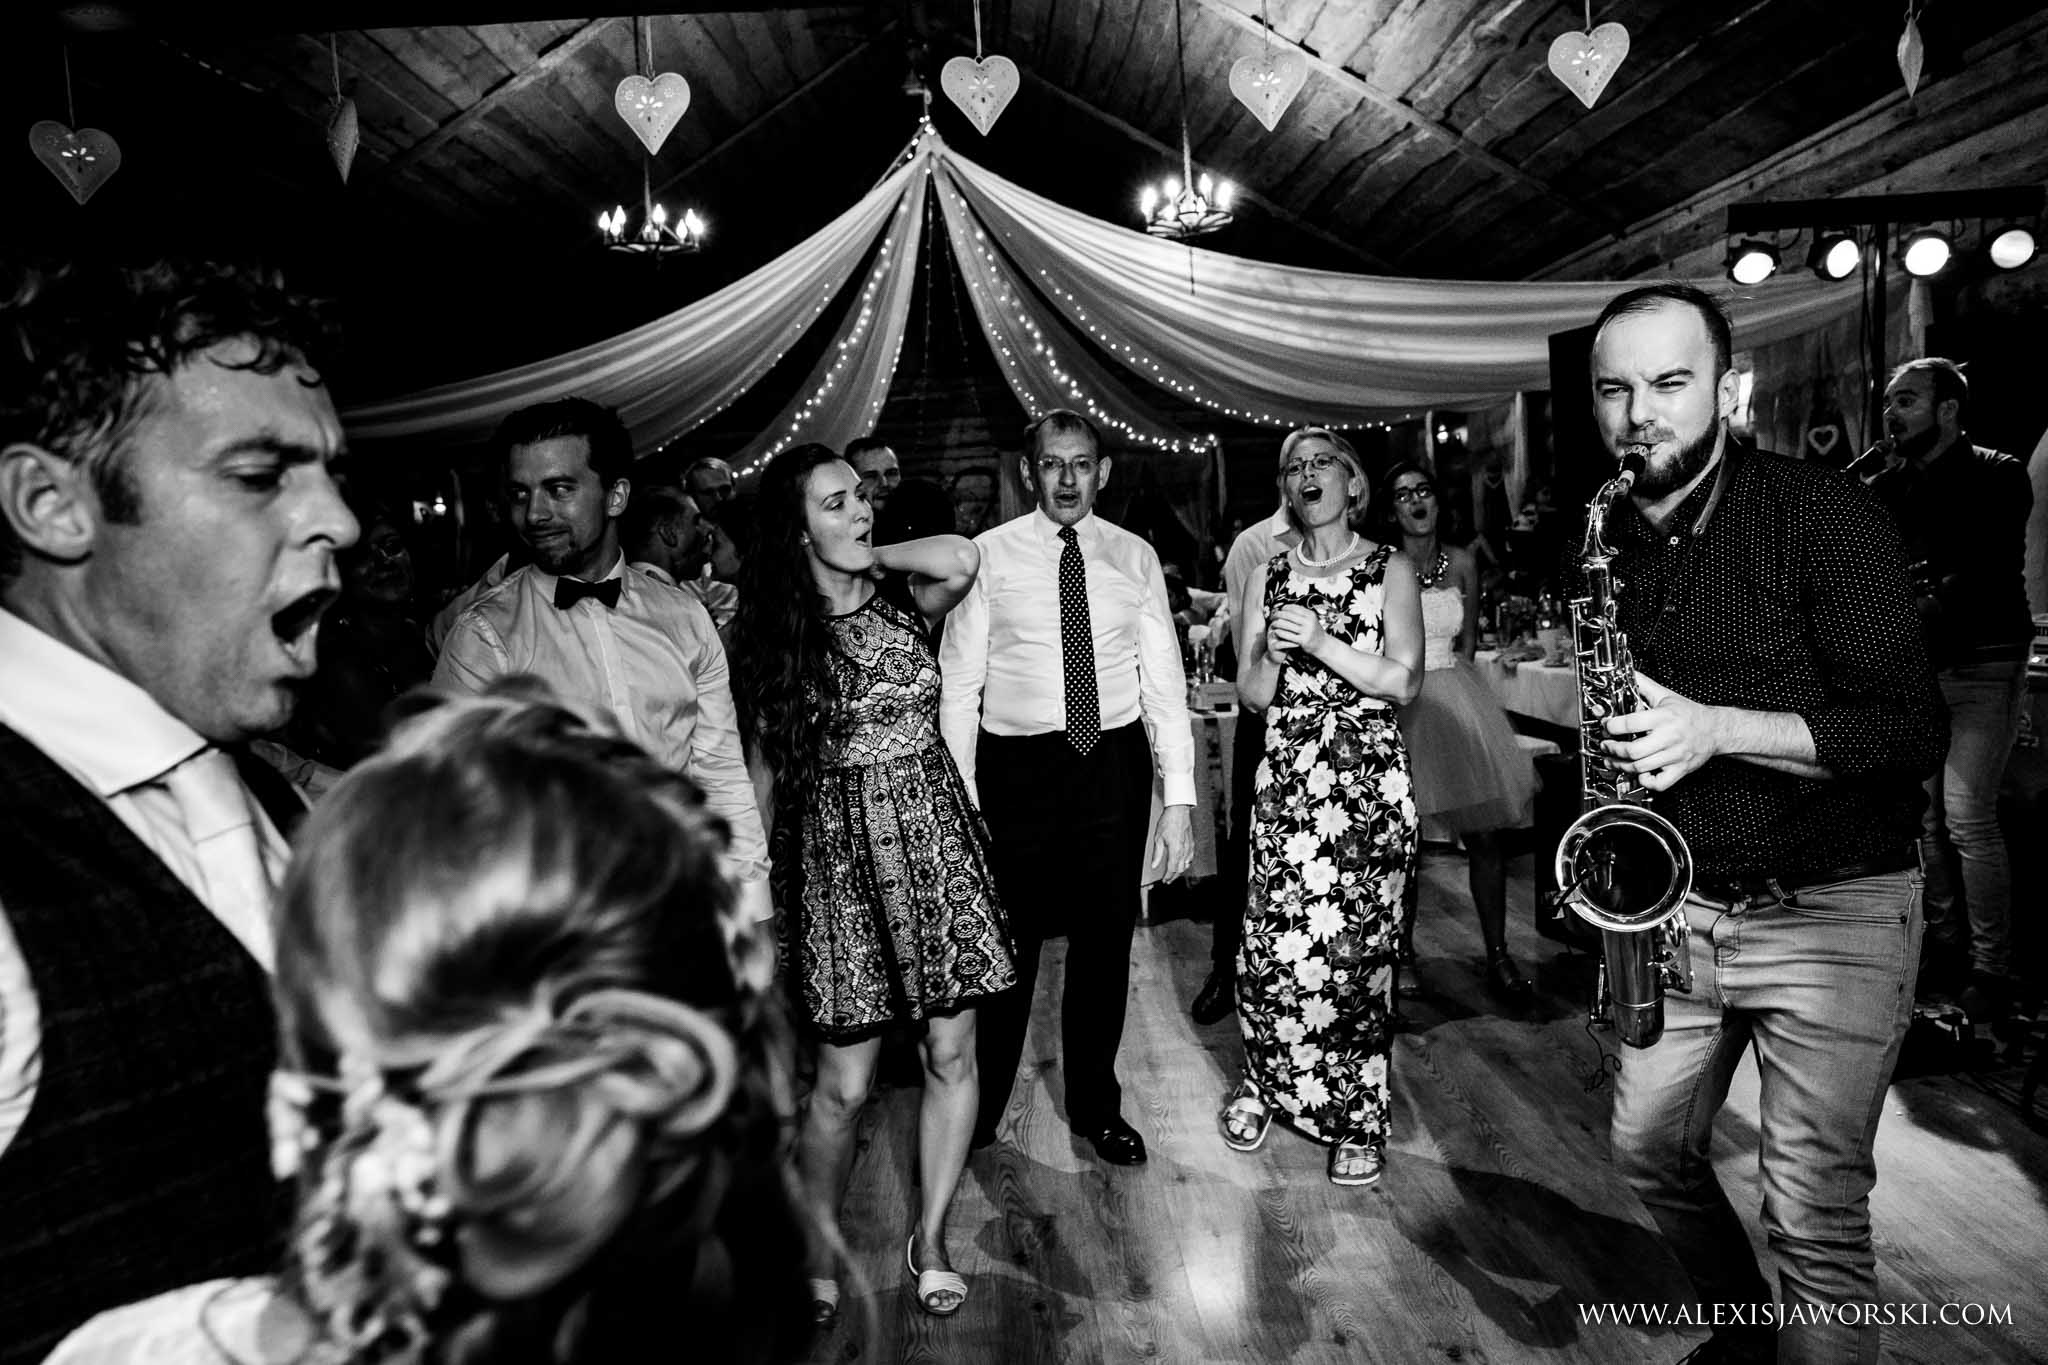 sax player serenading bride and groom